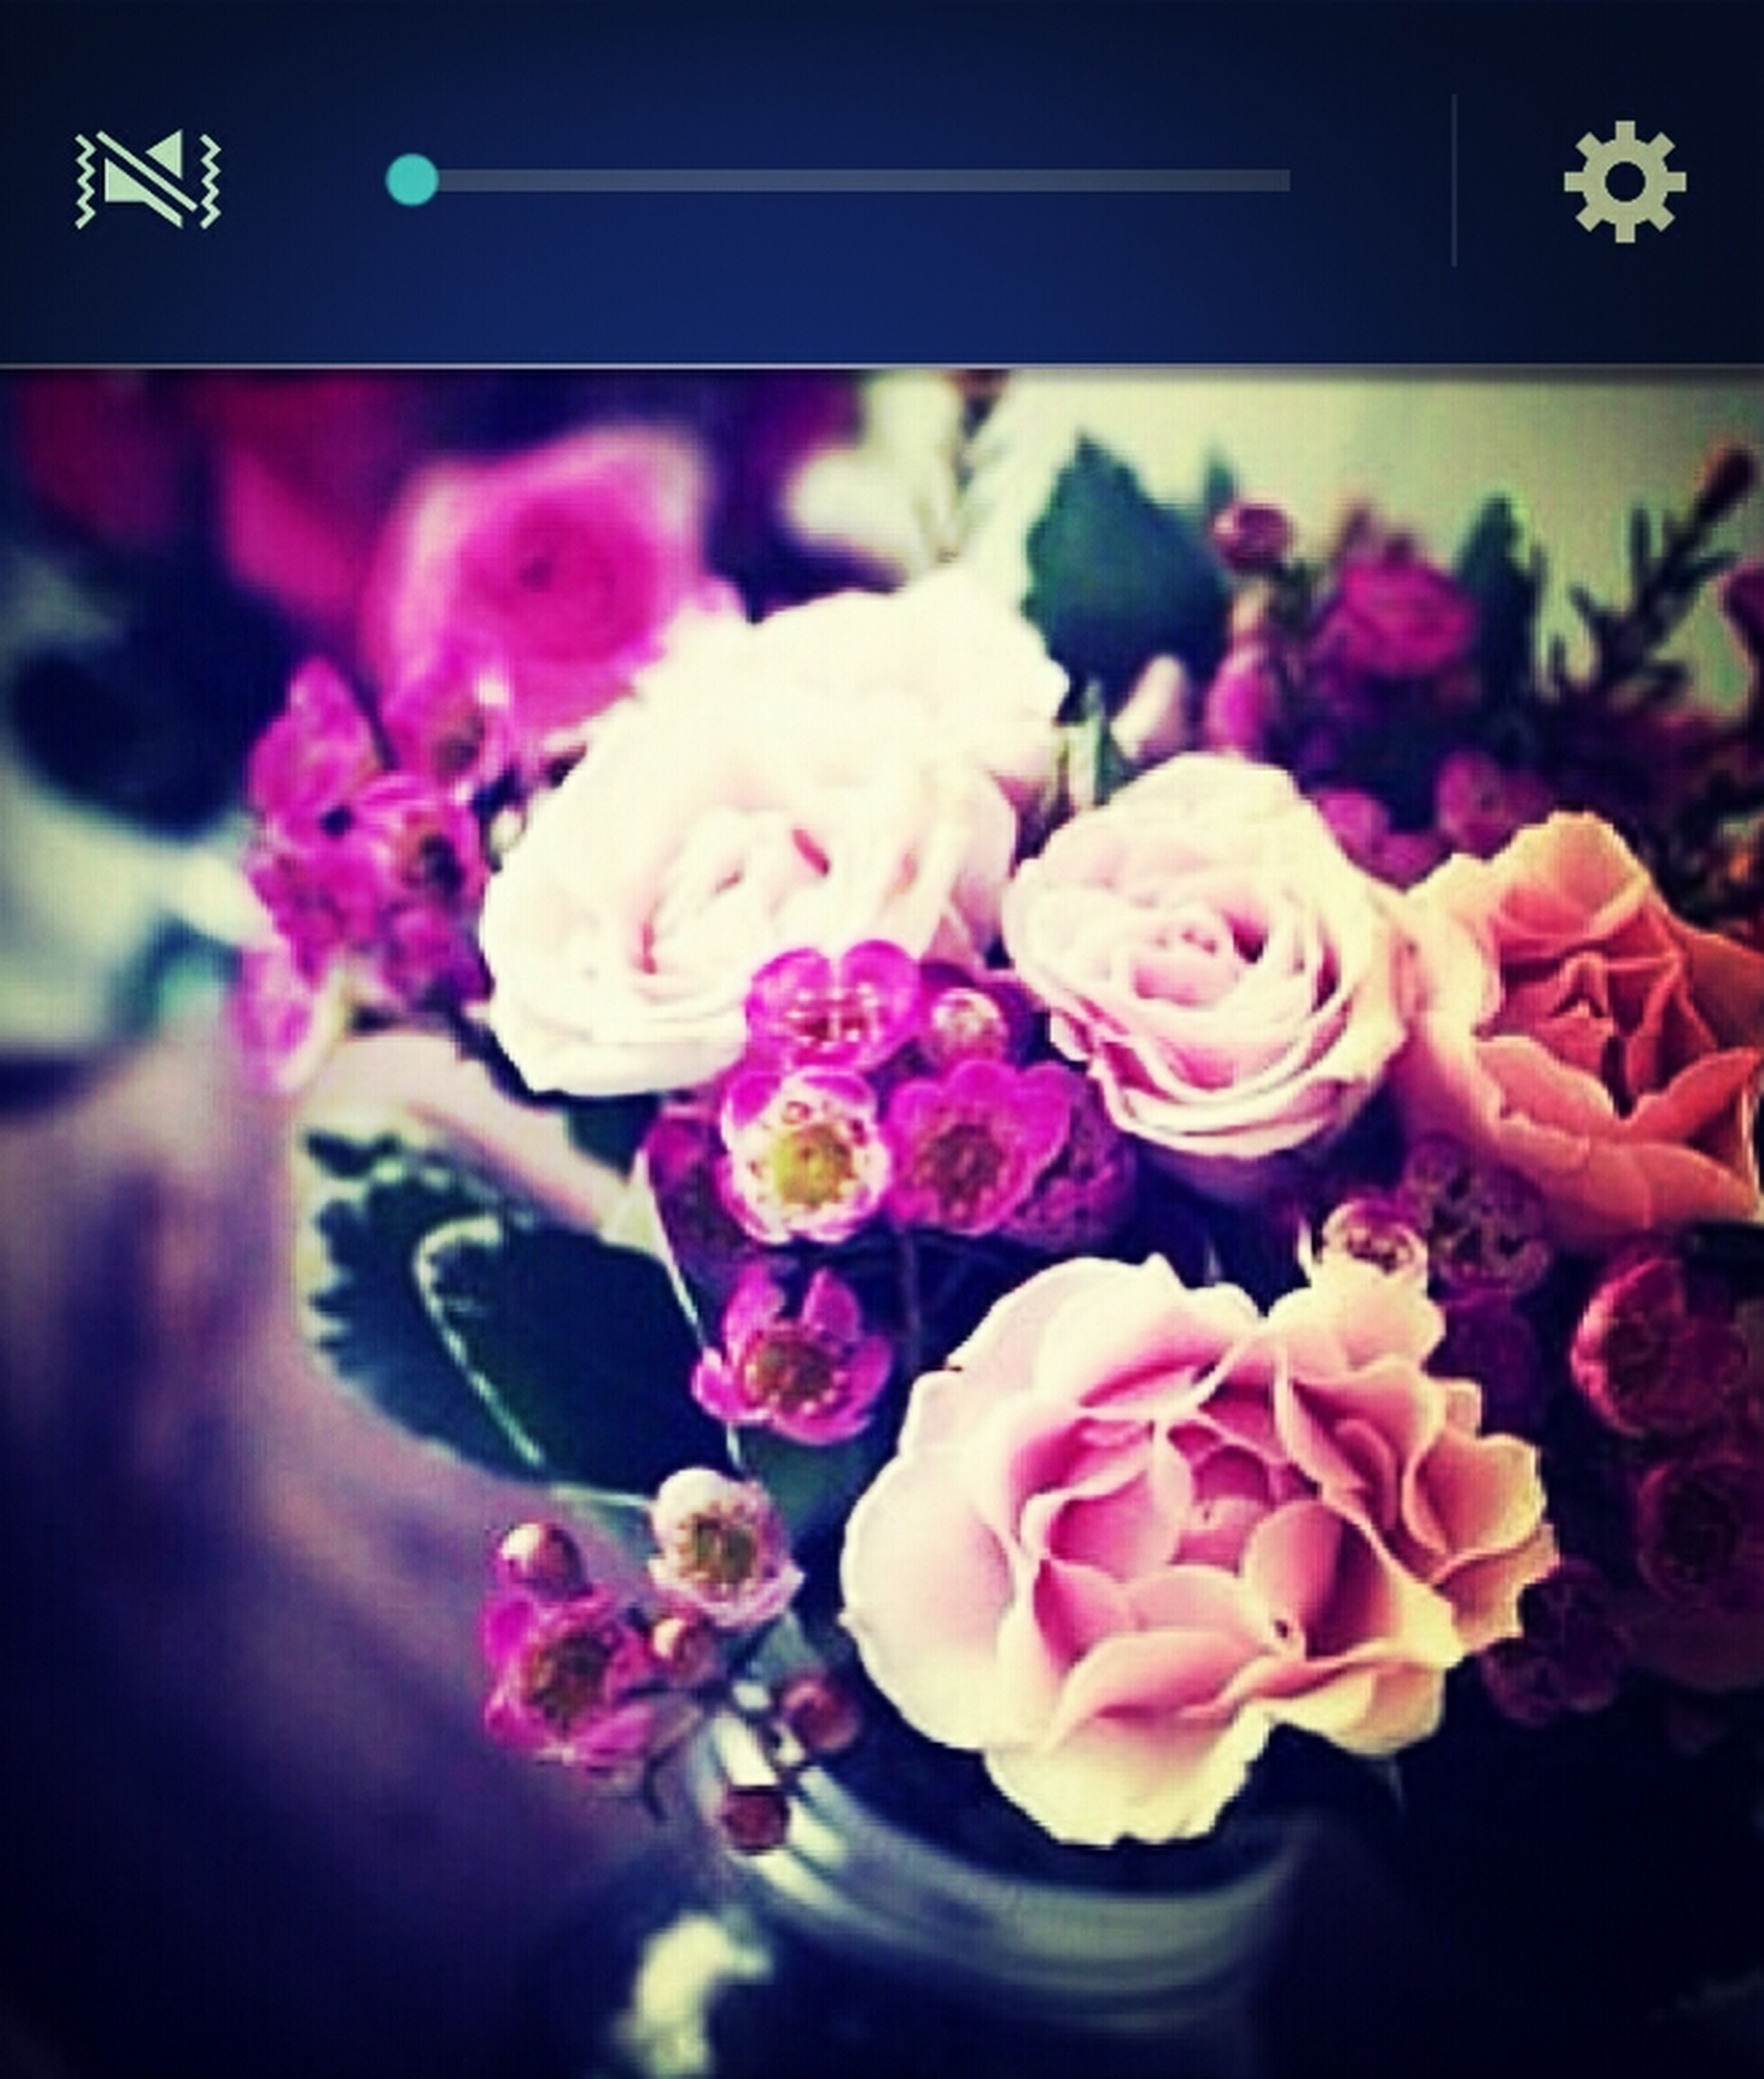 flower, petal, fragility, freshness, indoors, flower head, rose - flower, close-up, beauty in nature, pink color, bouquet, bunch of flowers, vase, nature, growth, blooming, decoration, plant, focus on foreground, flower arrangement